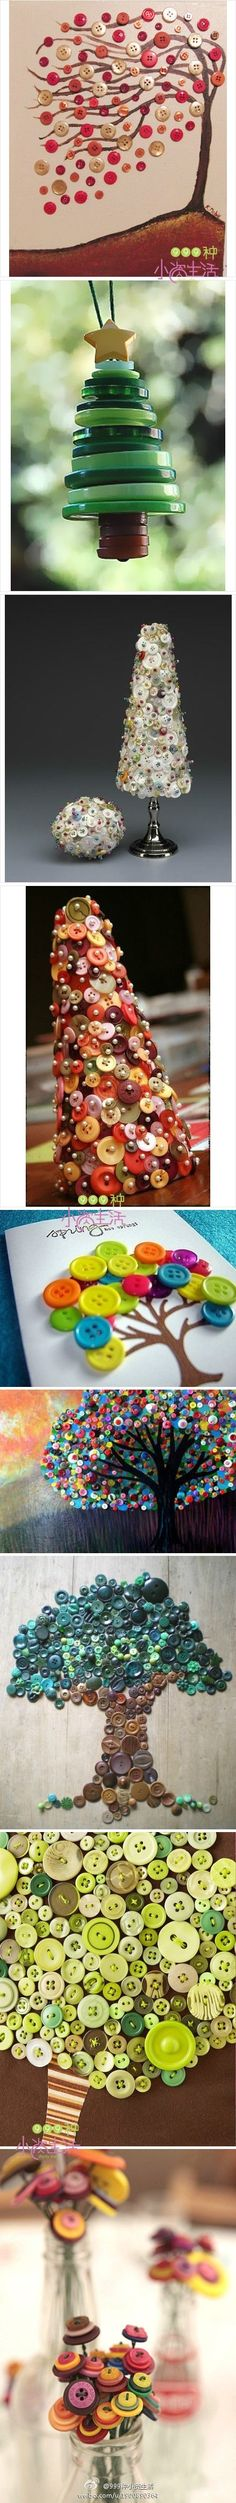 who knew you could do so much with buttons. Wonderful ideas with buttons!! Love the Christmas tree ornament! And the white button art. I have a wreath made completely of white buttons.